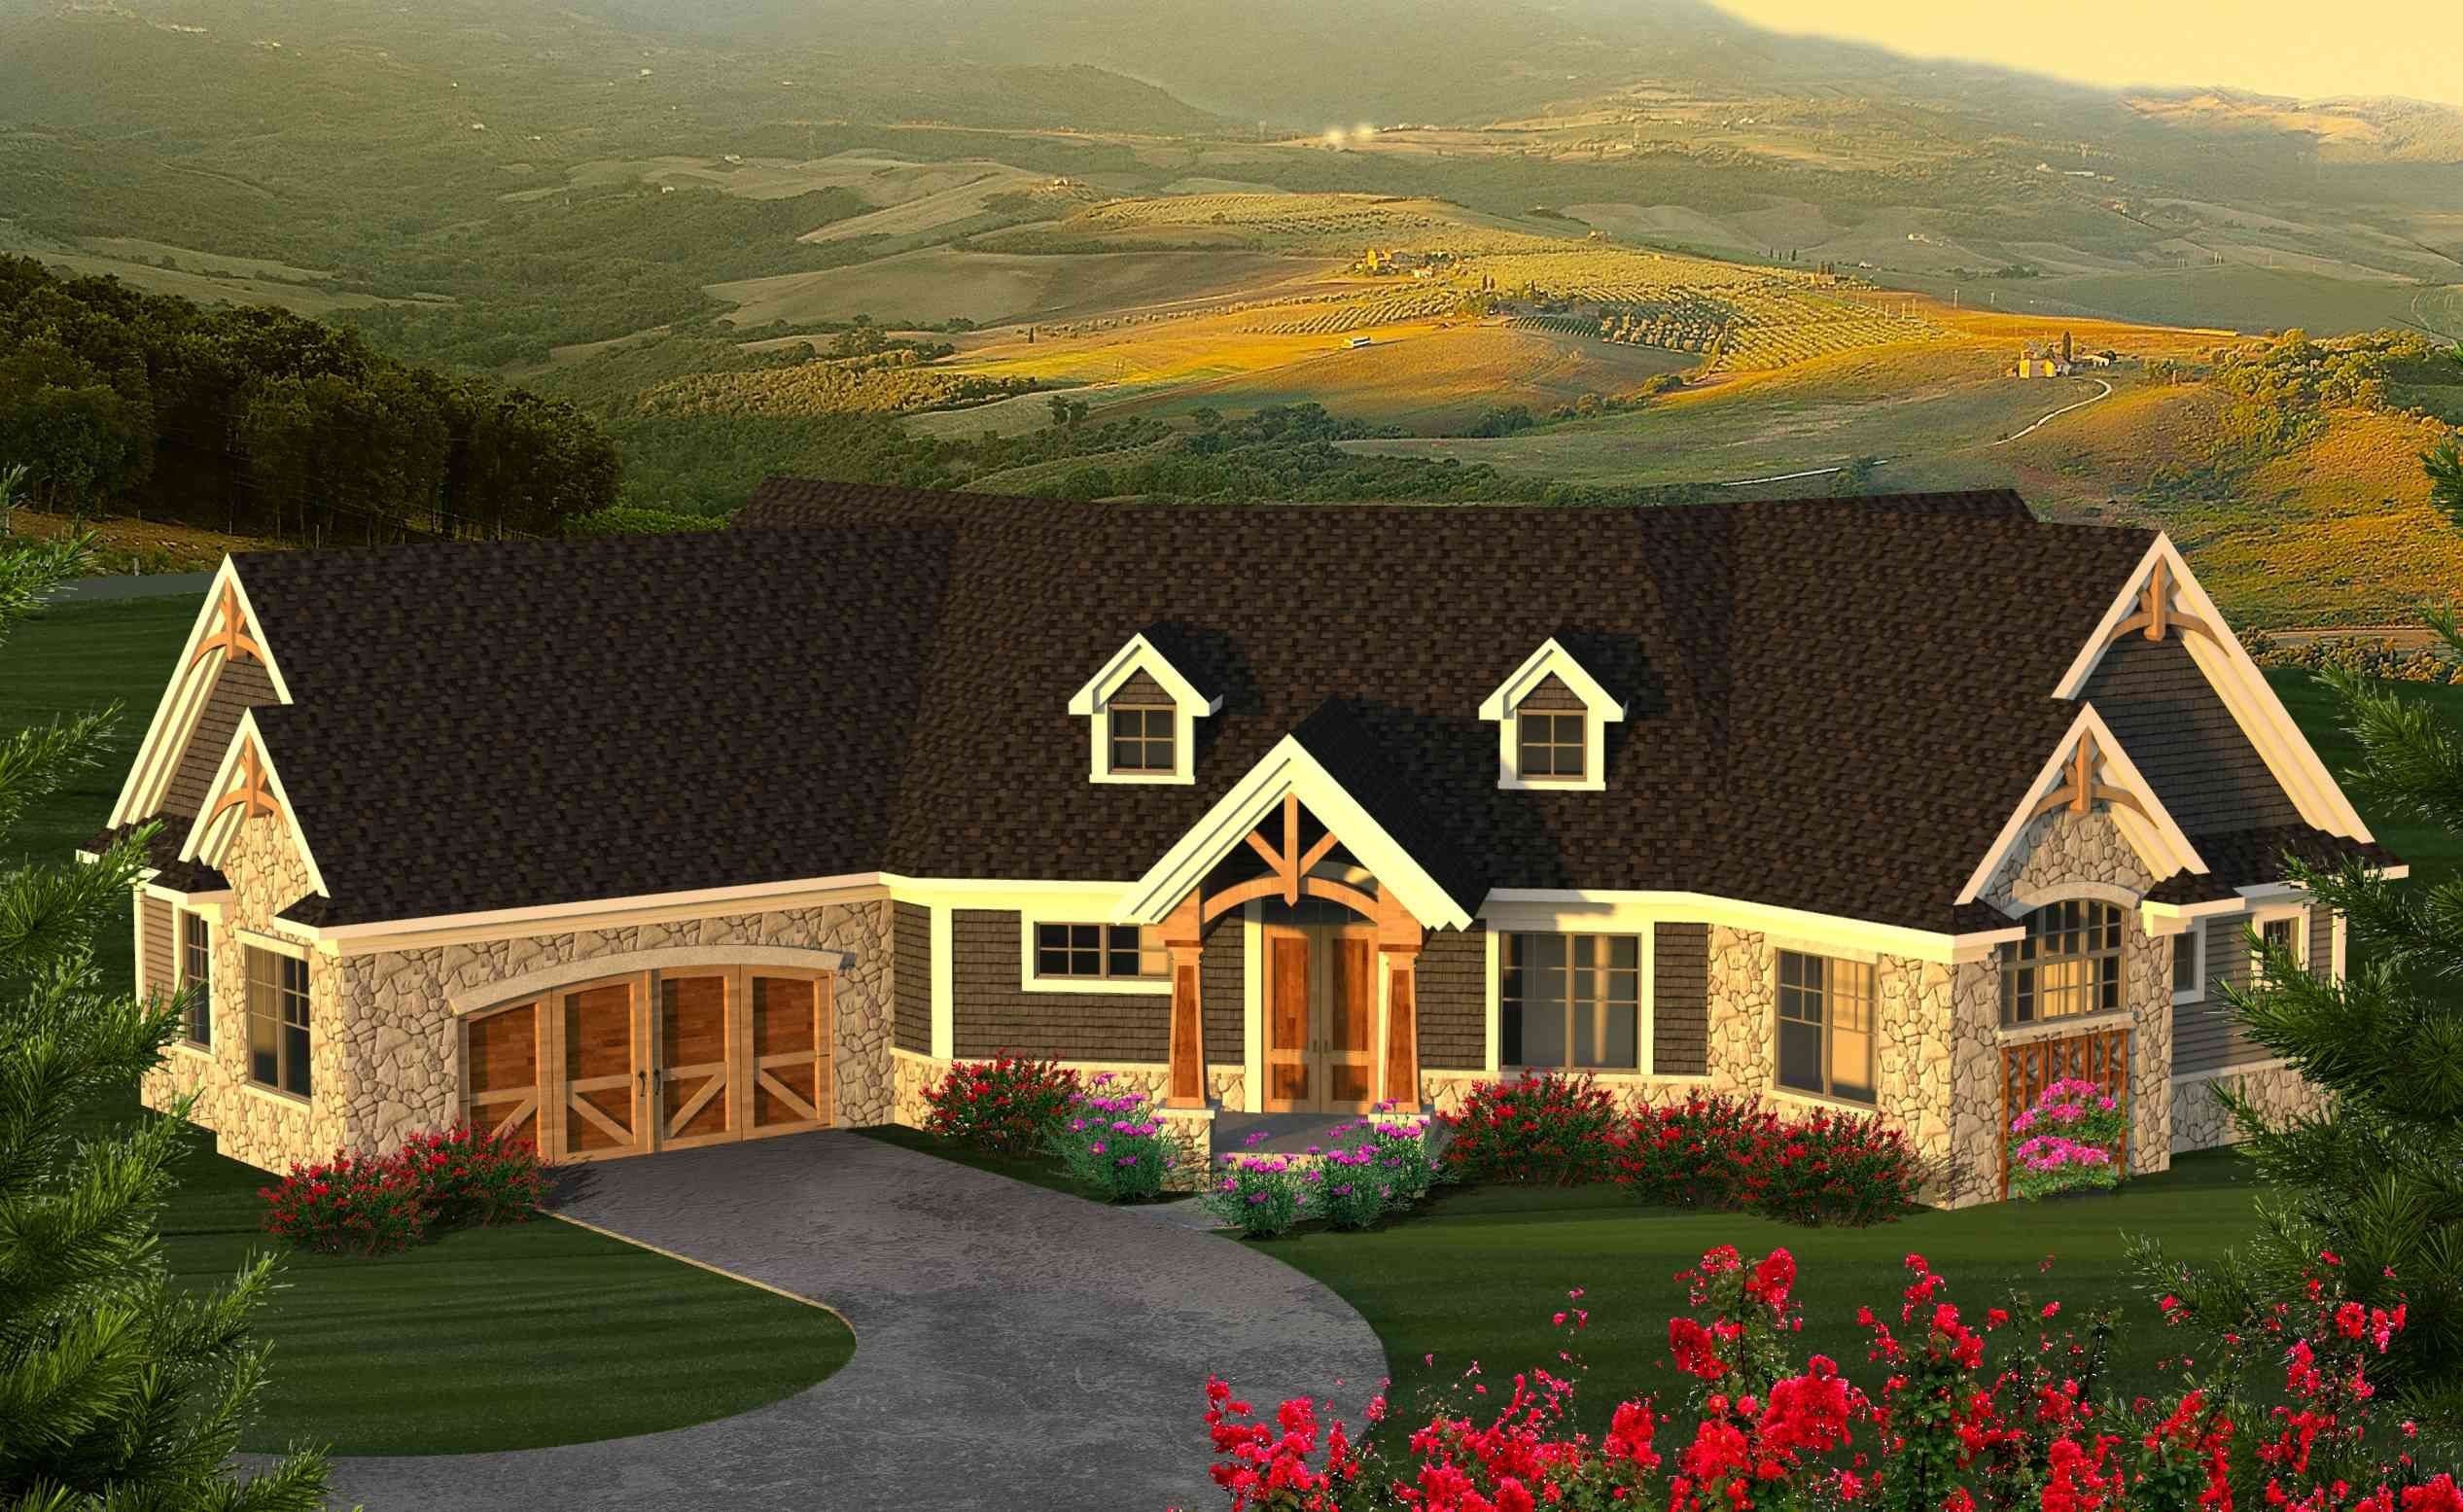 Plan 89969AH: Angled Mountain Ranch with Loft | Houses ... on bachelor home plans, frame house plans, angels house plans, 90 degree house plans, unique house plans, hexagon house plans, short house plans, vertical house plans, country house plans, sq ft. house plans, cathedral house plans, glass and steel house plans, ranch house plans, slanted house plans, straight house plans, decorative house plans, twisted house plans, angular house plans, 45 degree angle house plans,